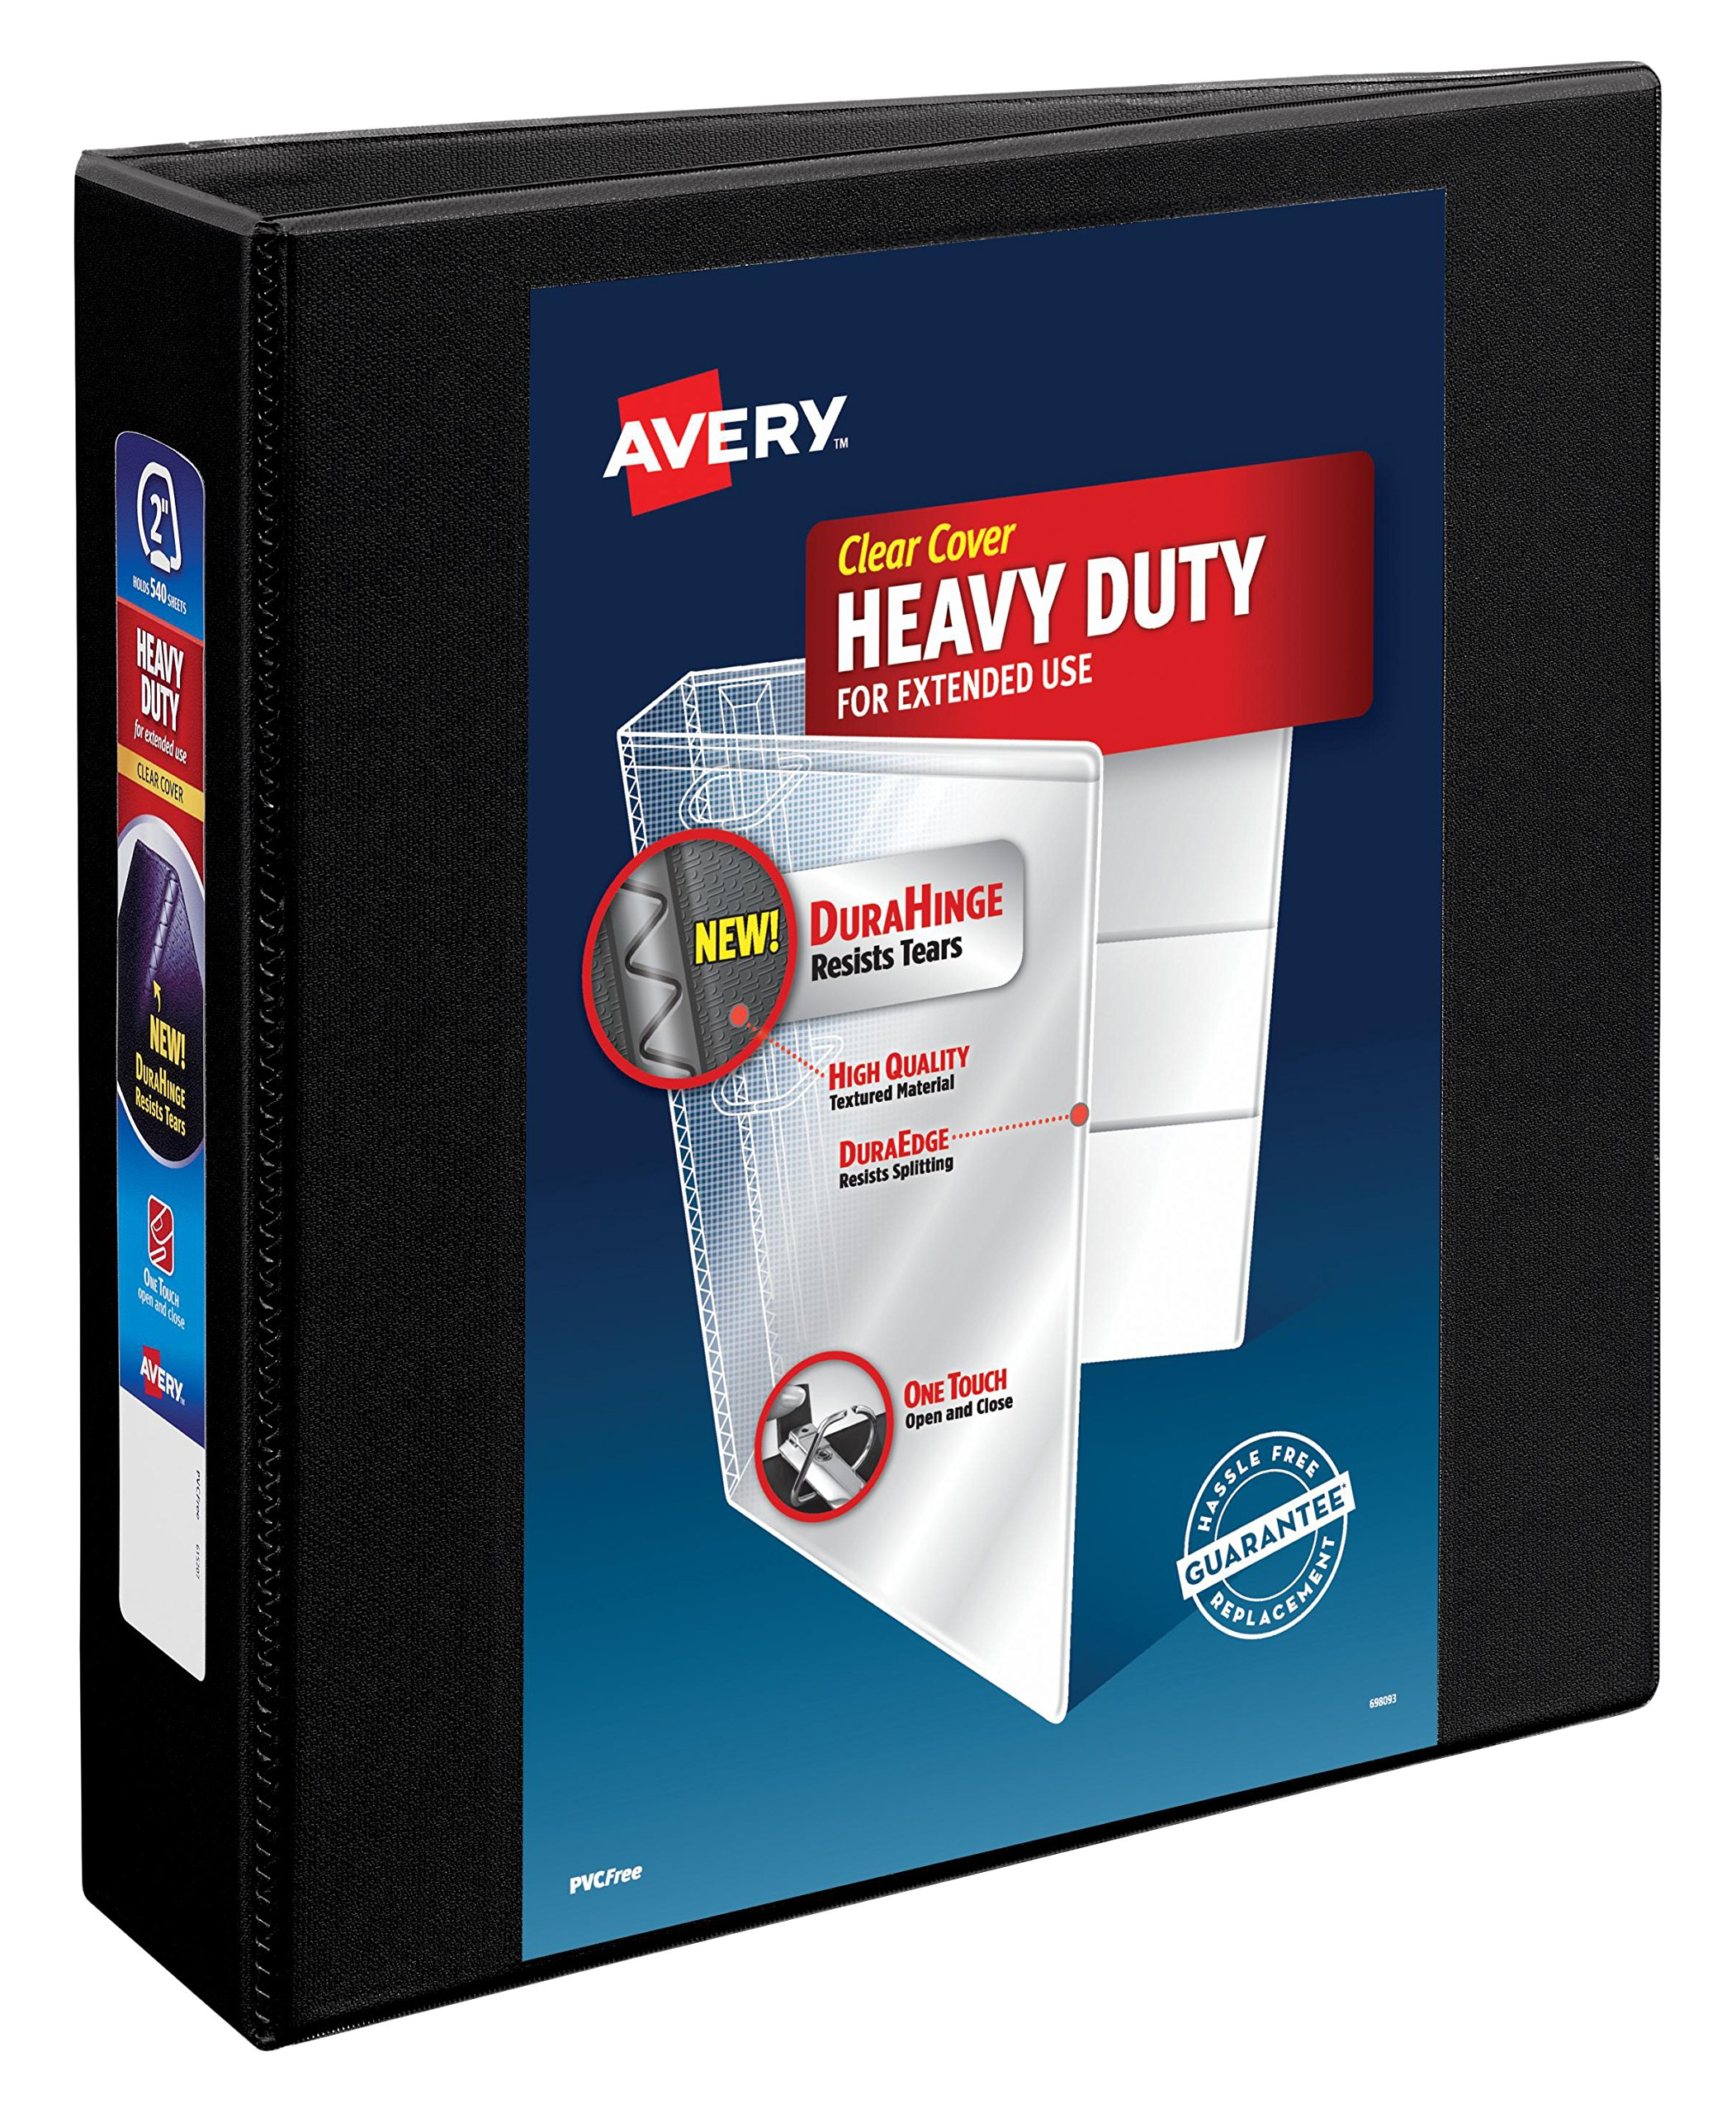 Avery Heavy-Duty View Binder, 2'' One Touch Slant Rings, 500-Sheet Capacity, DuraHinge, Black, Case Pack of 6 (79692)